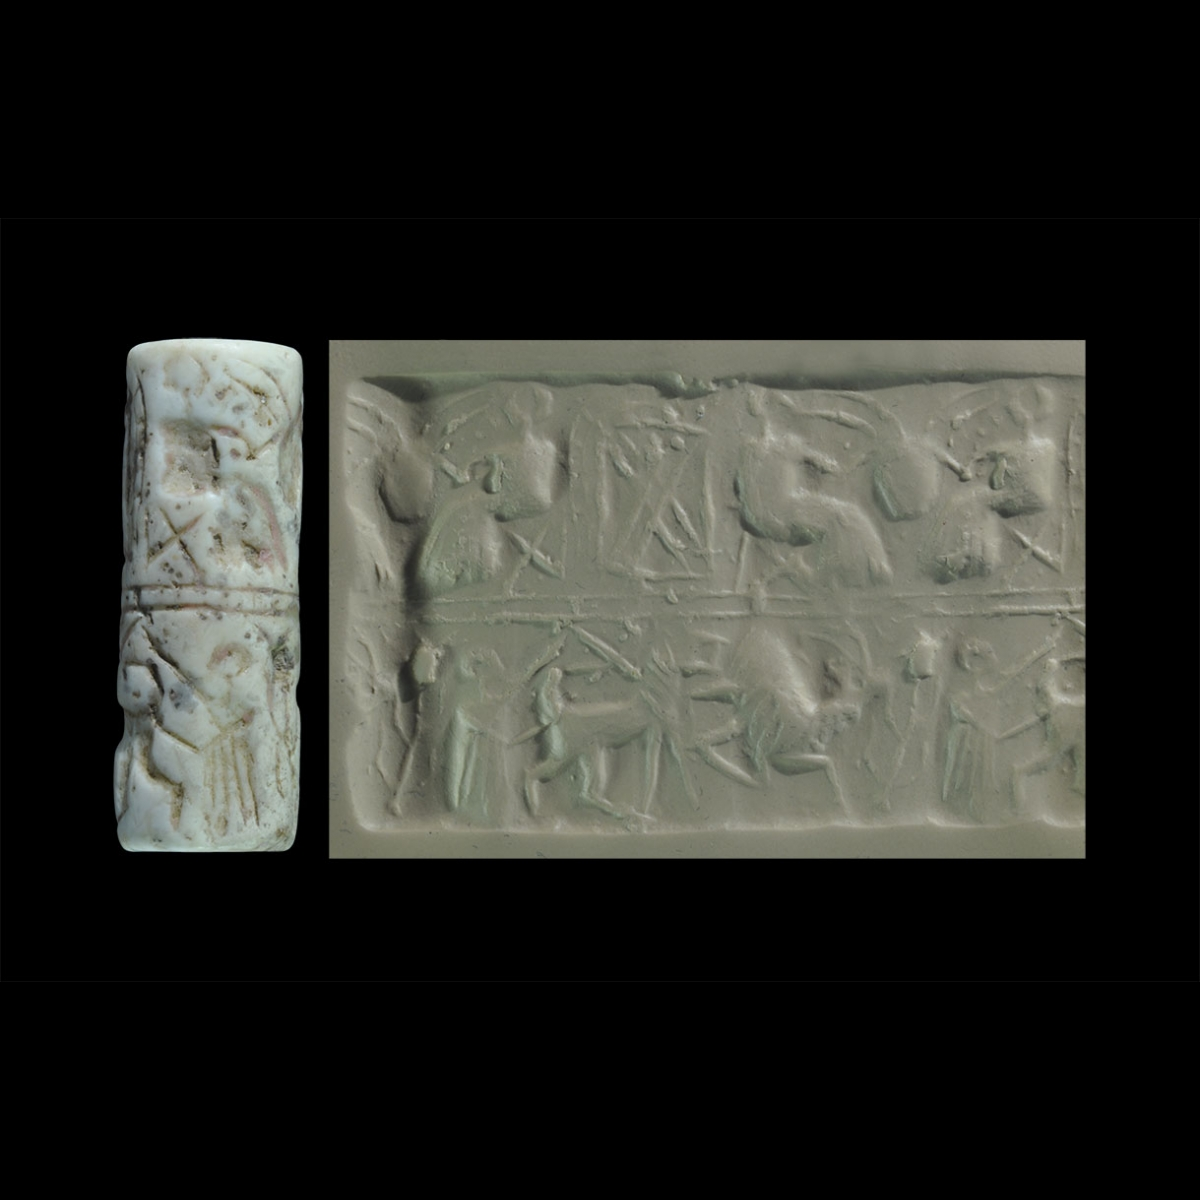 Photo of cylinder-seal-representing-a-banquet-a-hero-and-a-lion